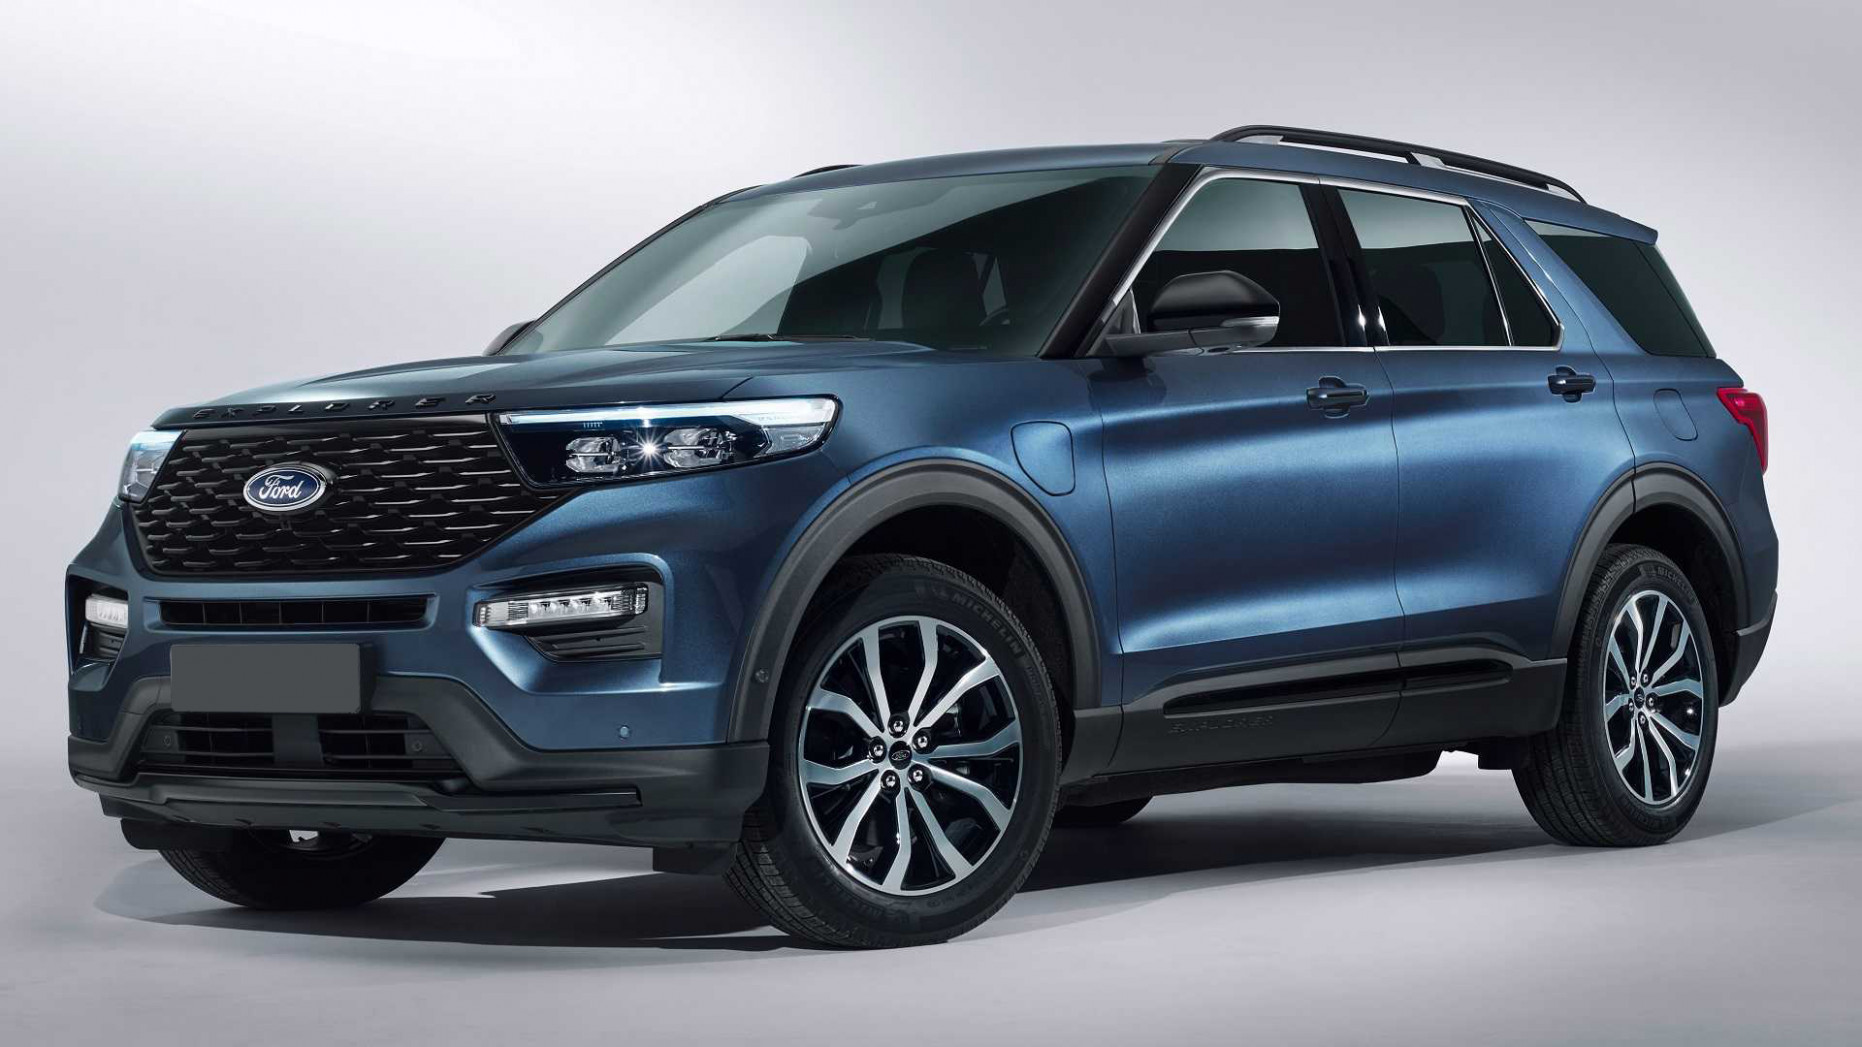 Configurations When Does The 2022 Ford Explorer Come Out